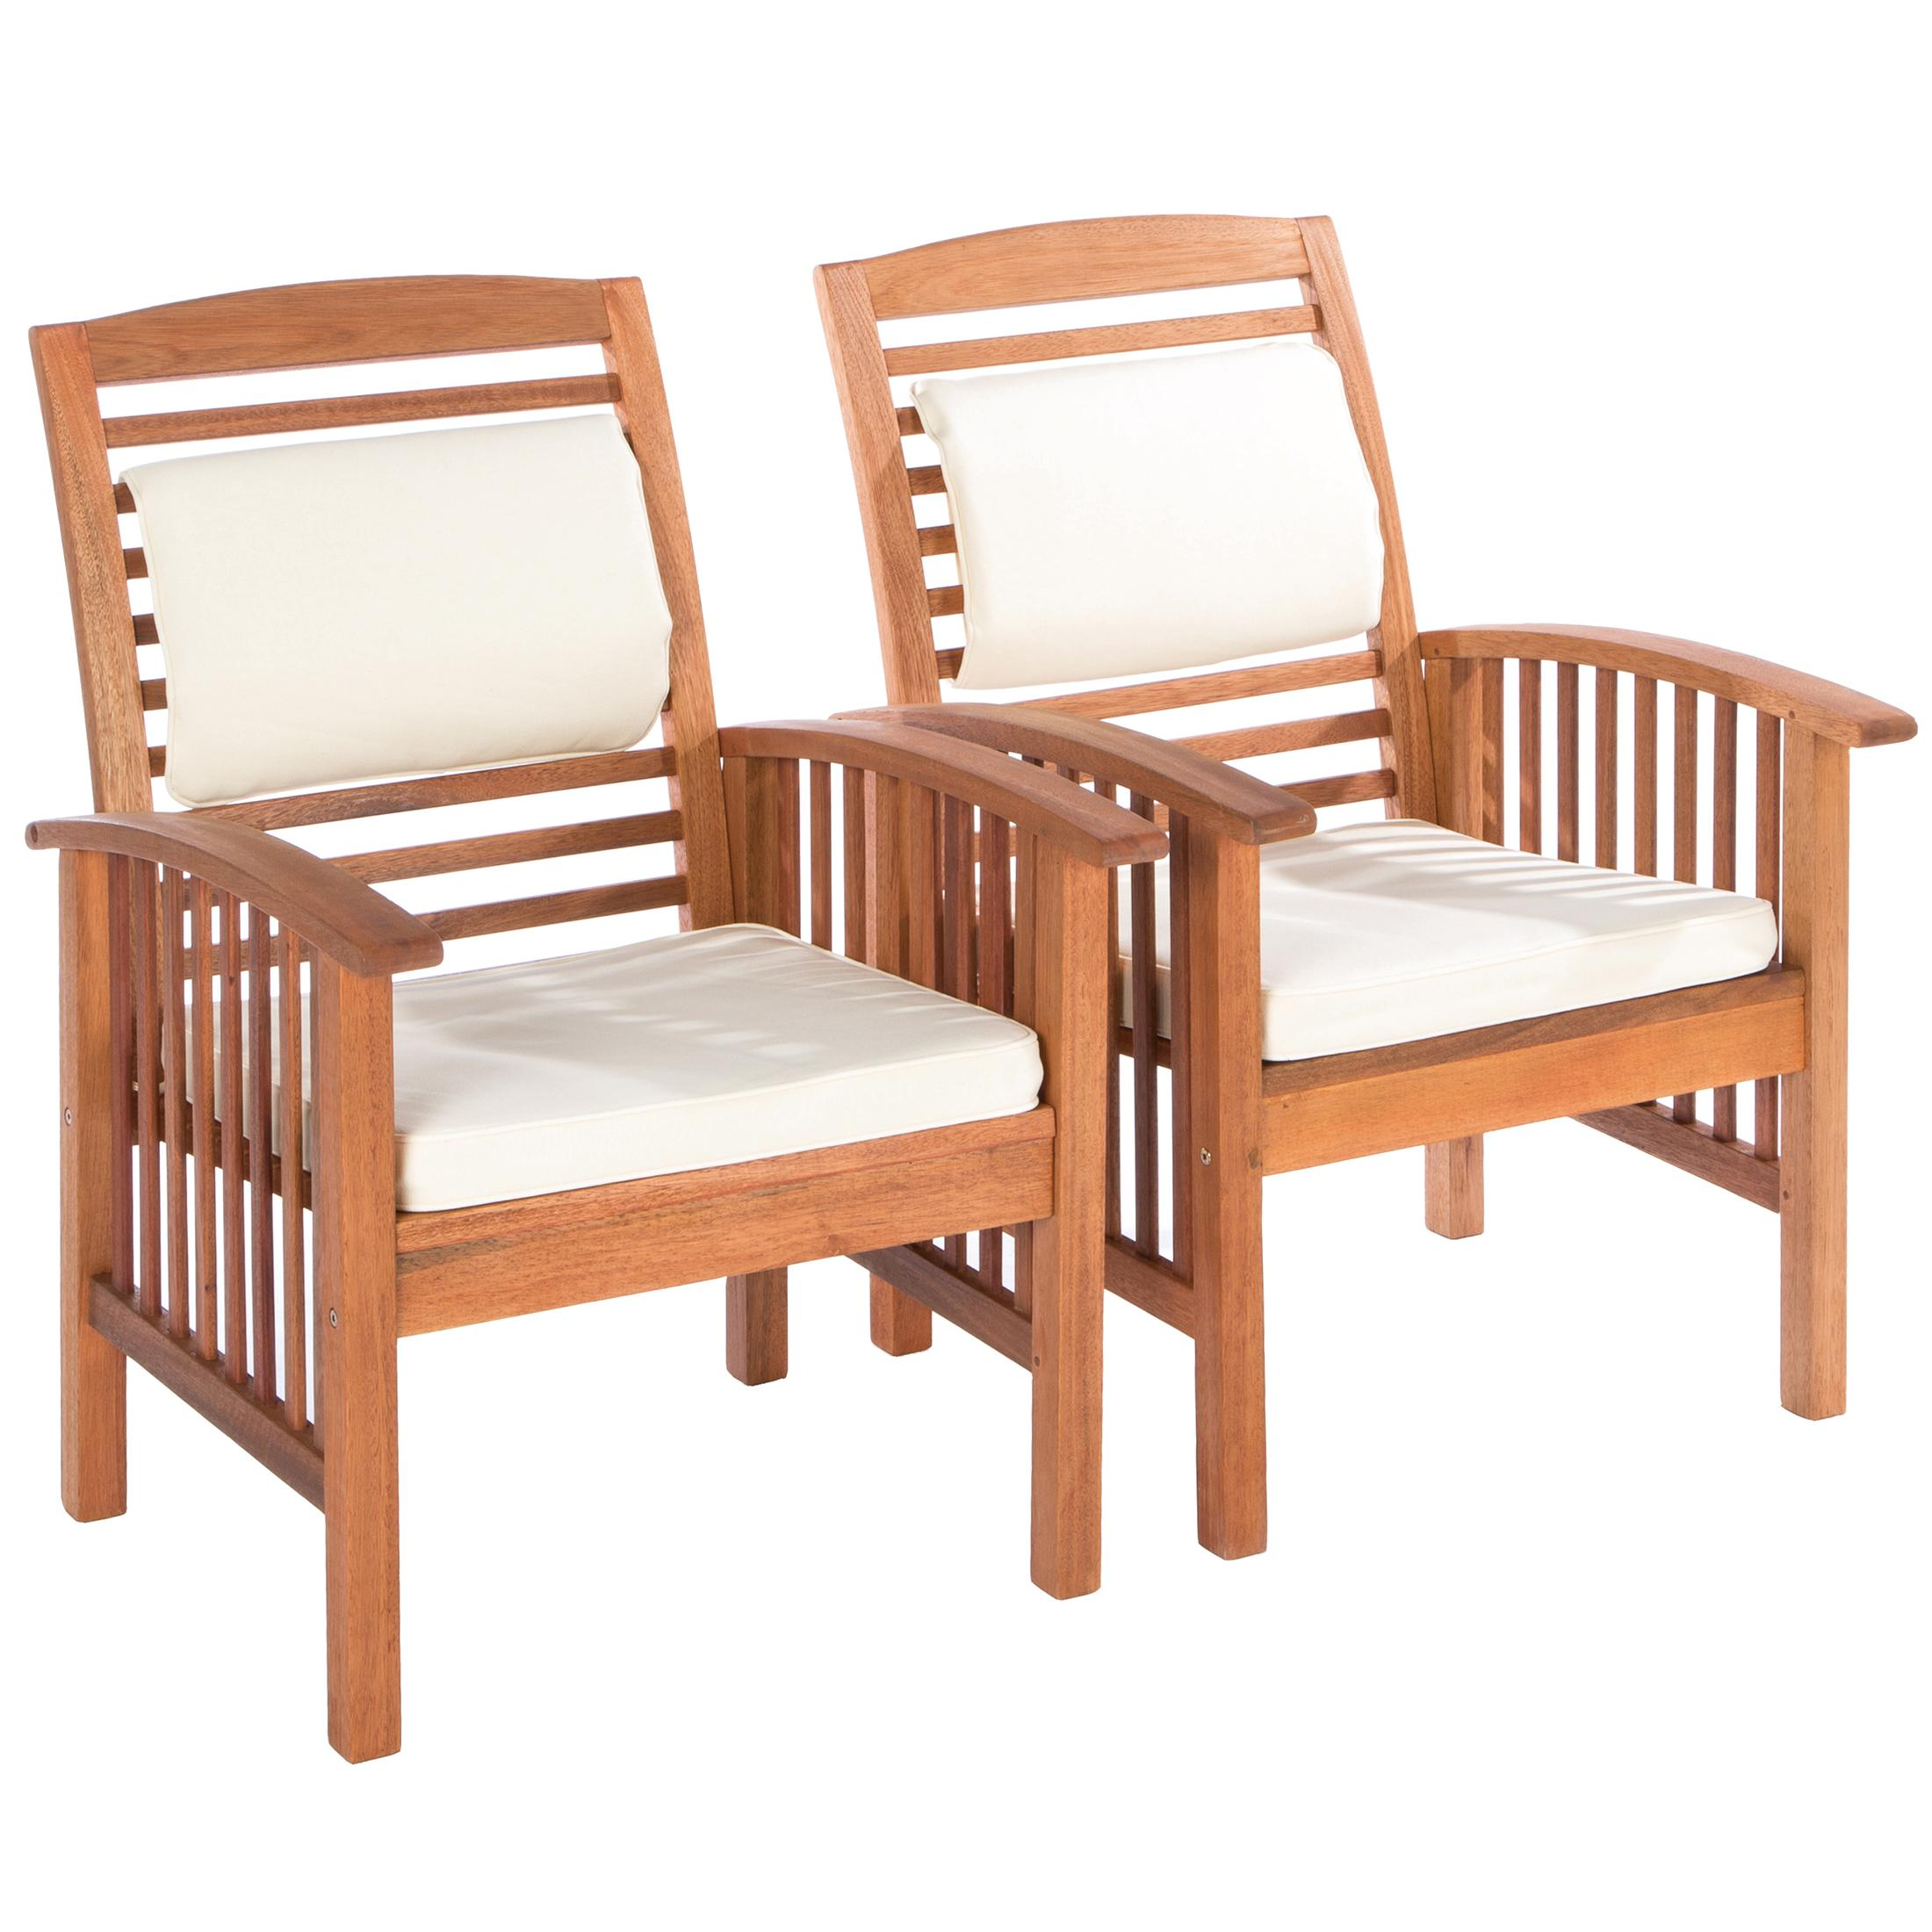 Ultranatura 200100001046 Canberra Lot de 2 Chaises Lounge